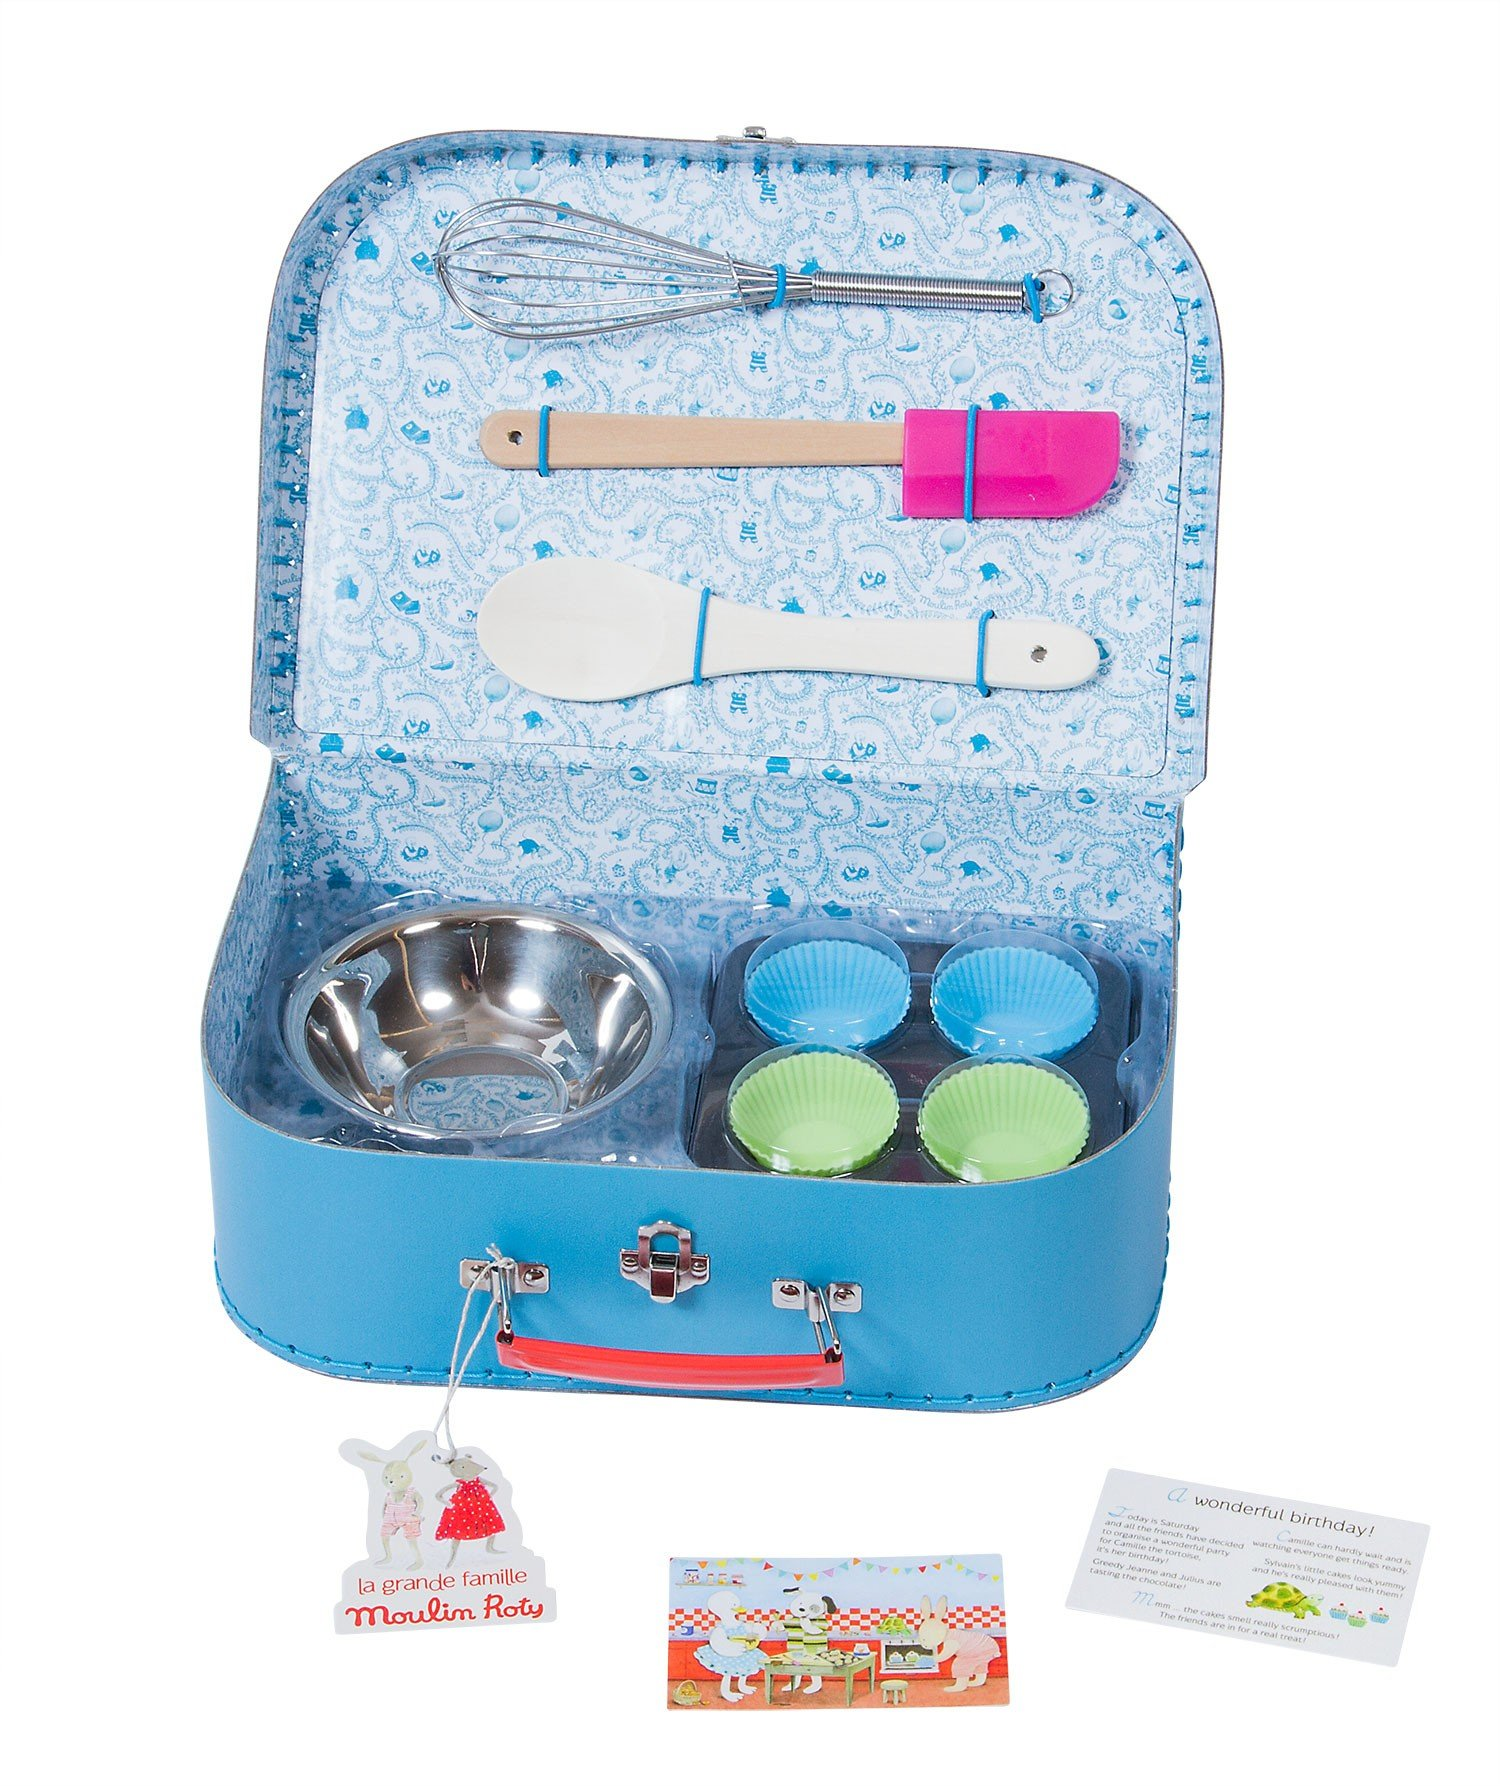 Moulin Roty Je Fais Des Gateaux ''I Am Baking Pastries!'' Child Sized Cooking Tools Toy Set in Carry Suitcase by Le Grande Famille (Image #1)